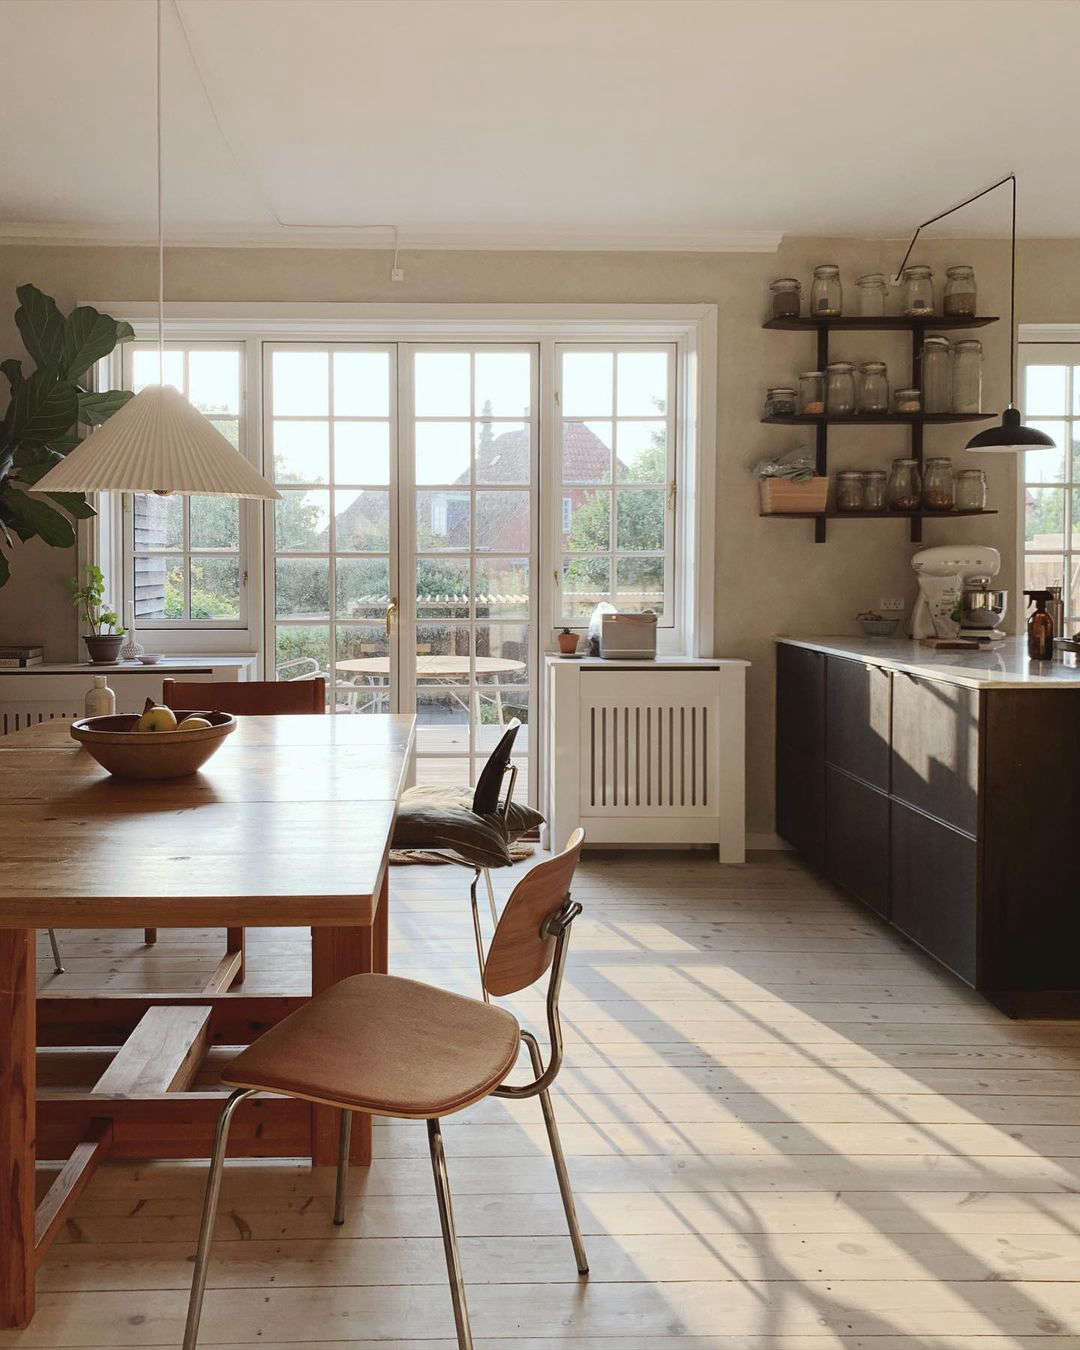 another view shows the kitchen, a once separate room that the couple opened up  10